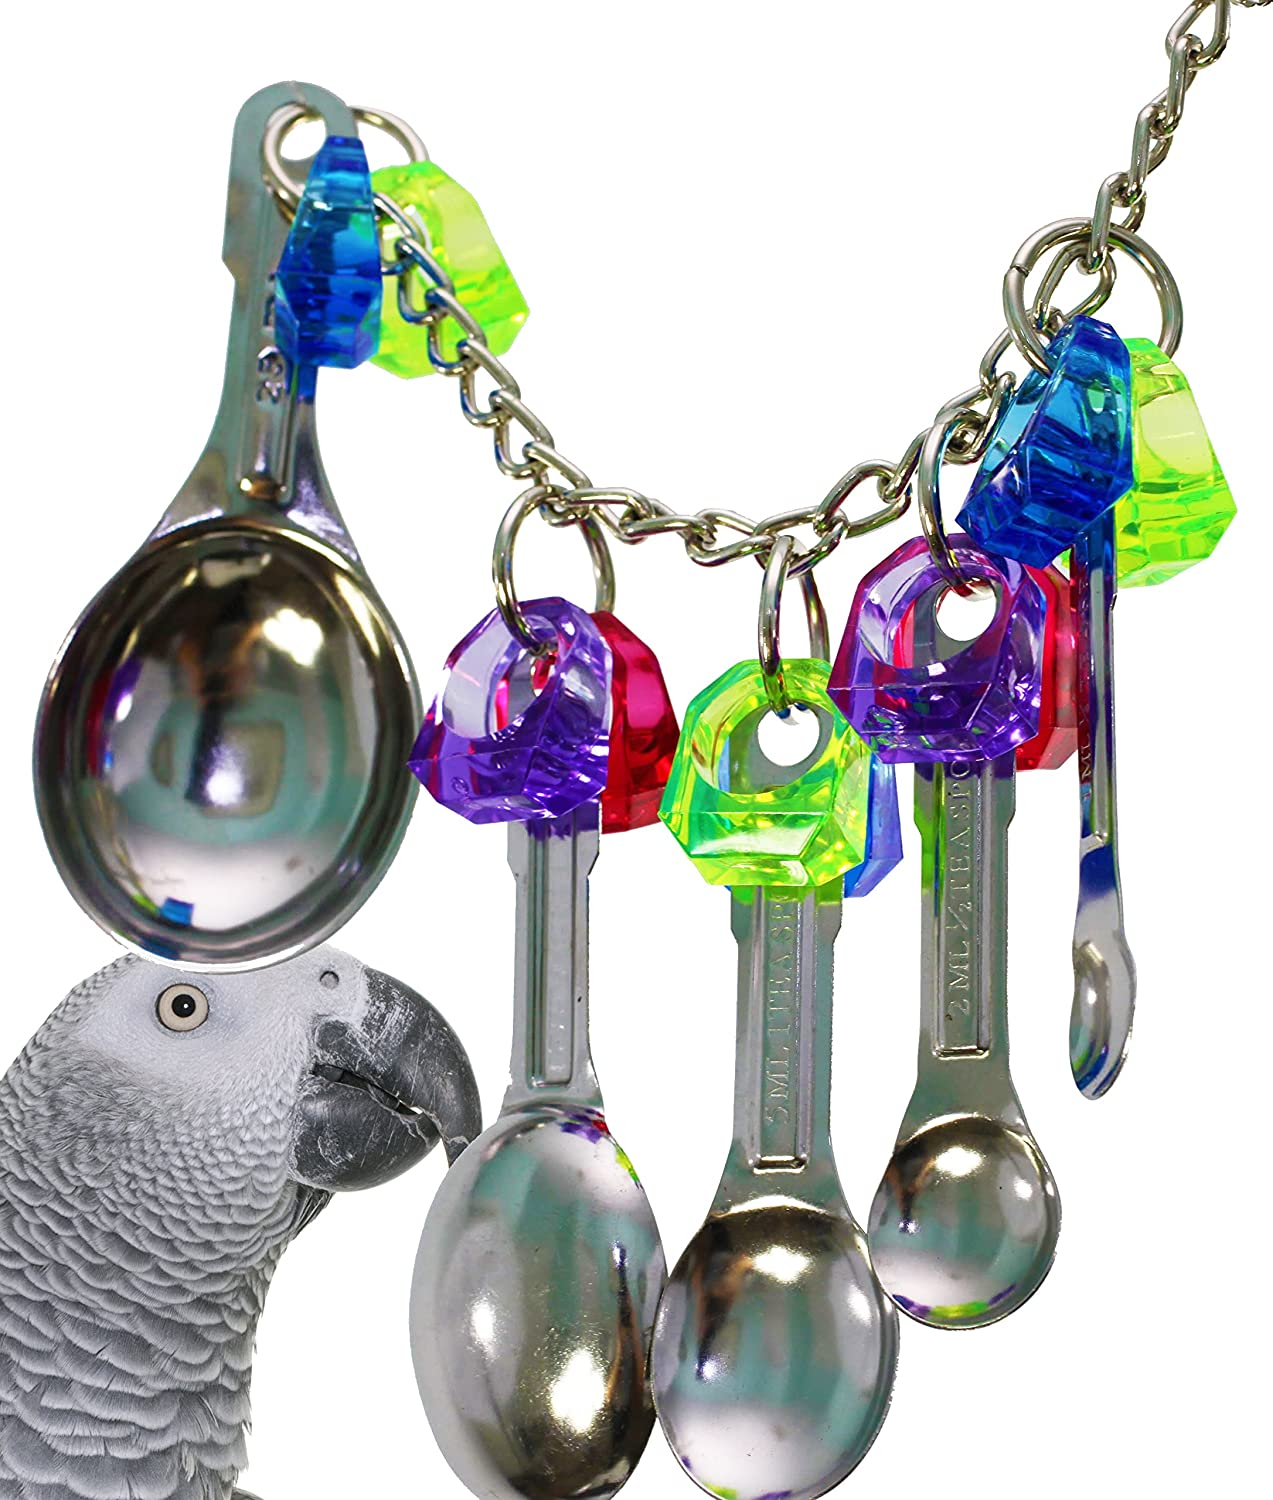 Bonka Bird Toys Delight African Grey Parrot Cages Bird Toy Bird Cage Toys